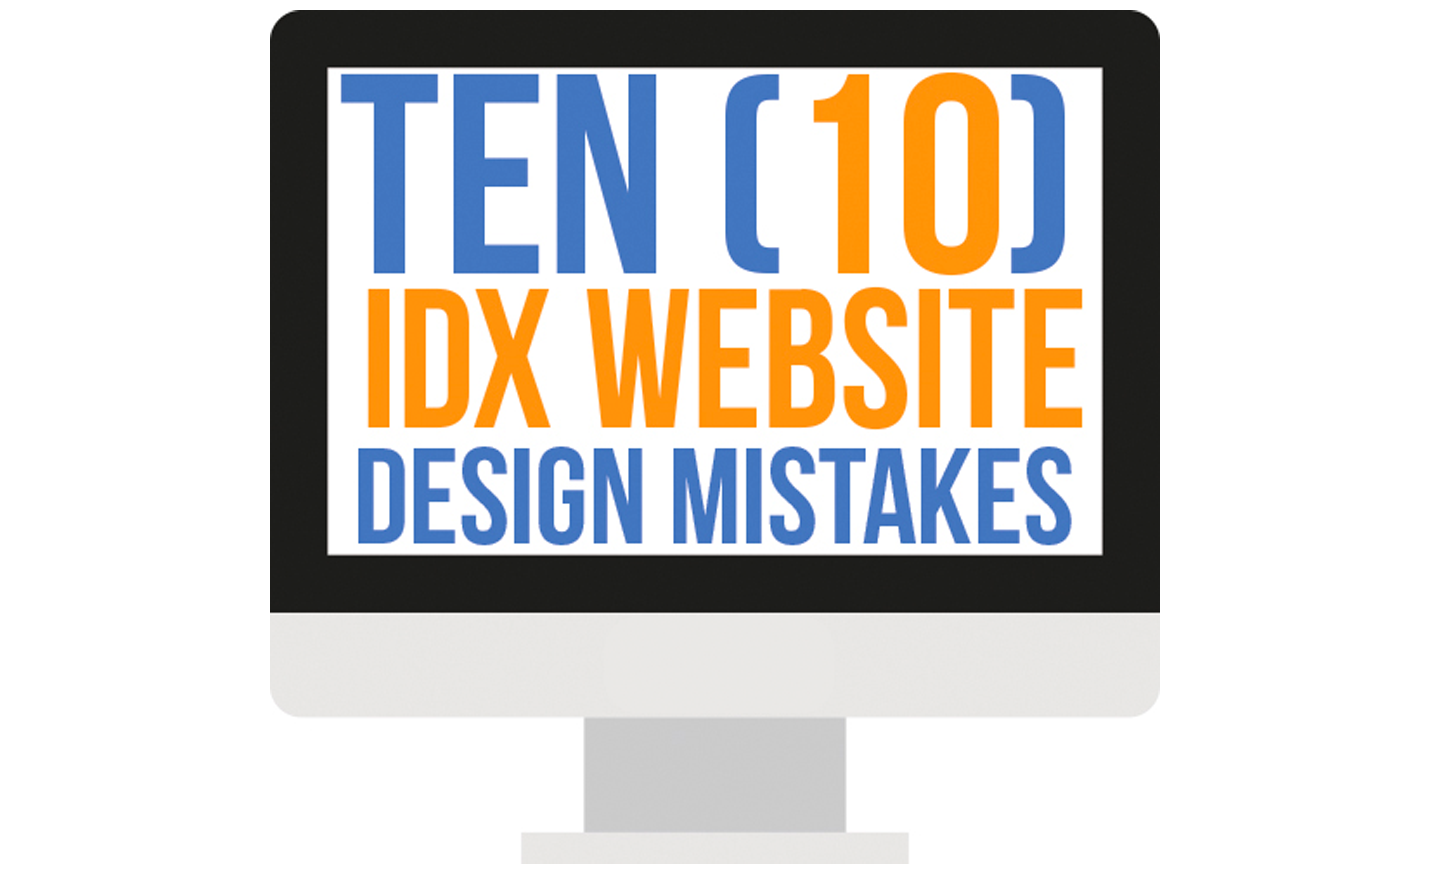 WEB SITE DESIGN MISTAKES IN IDX REAL ESTATE WEB SITES